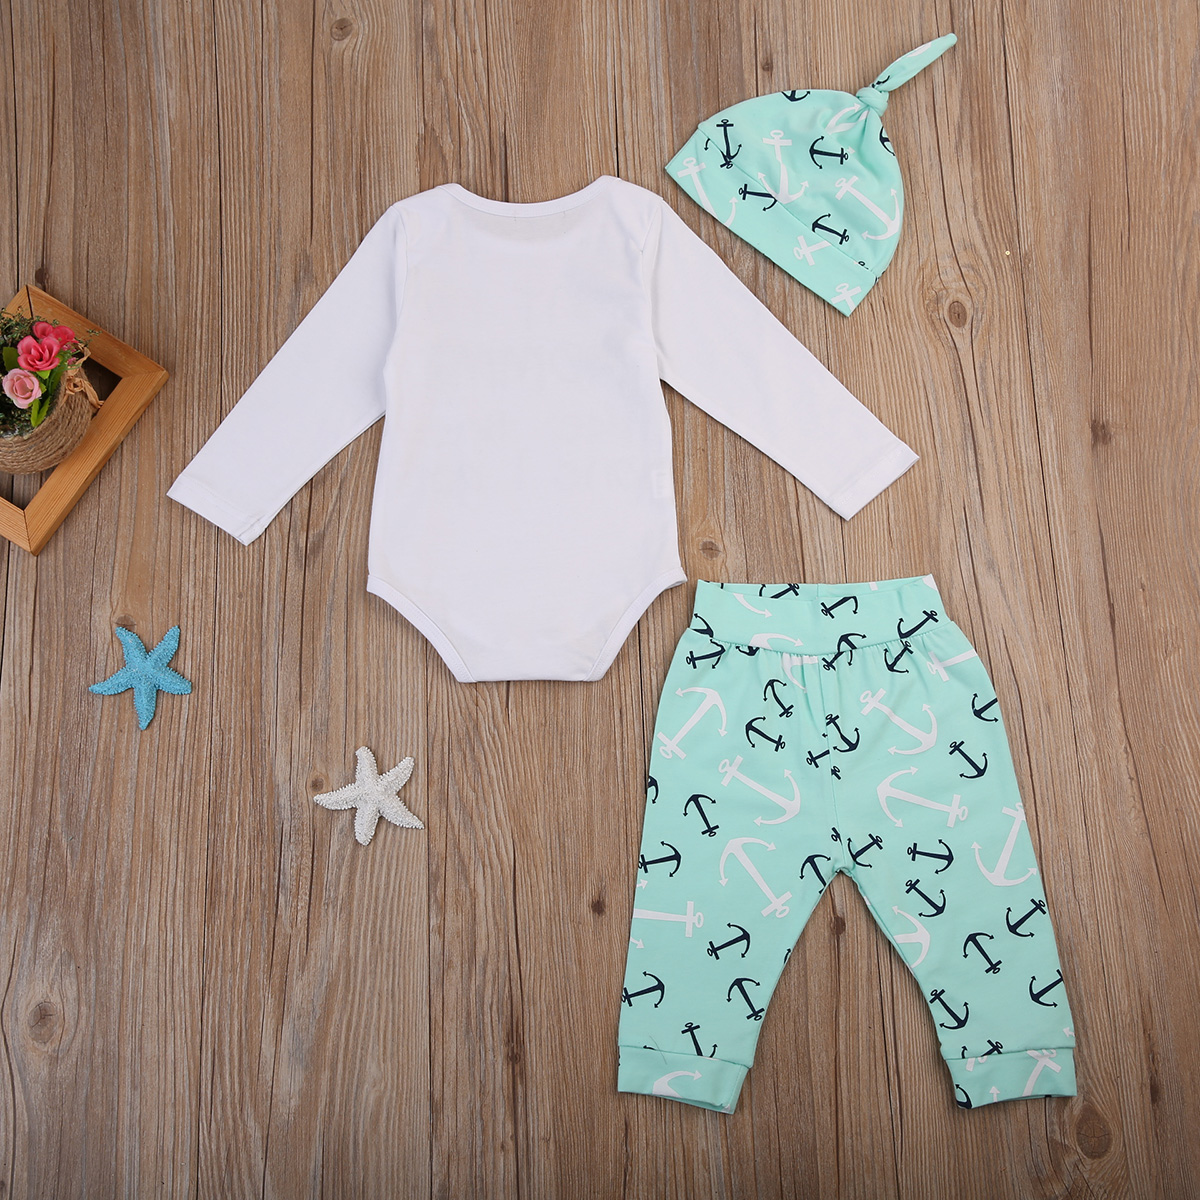 af3f72a57 3PCS Newborn Baby Boy Clothes Long Sleeve Romper Tops+Anchor Pant Hat  Outfit Toddler Kids Clothing Set-in Clothing Sets from Mother & Kids on  Aliexpress.com ...